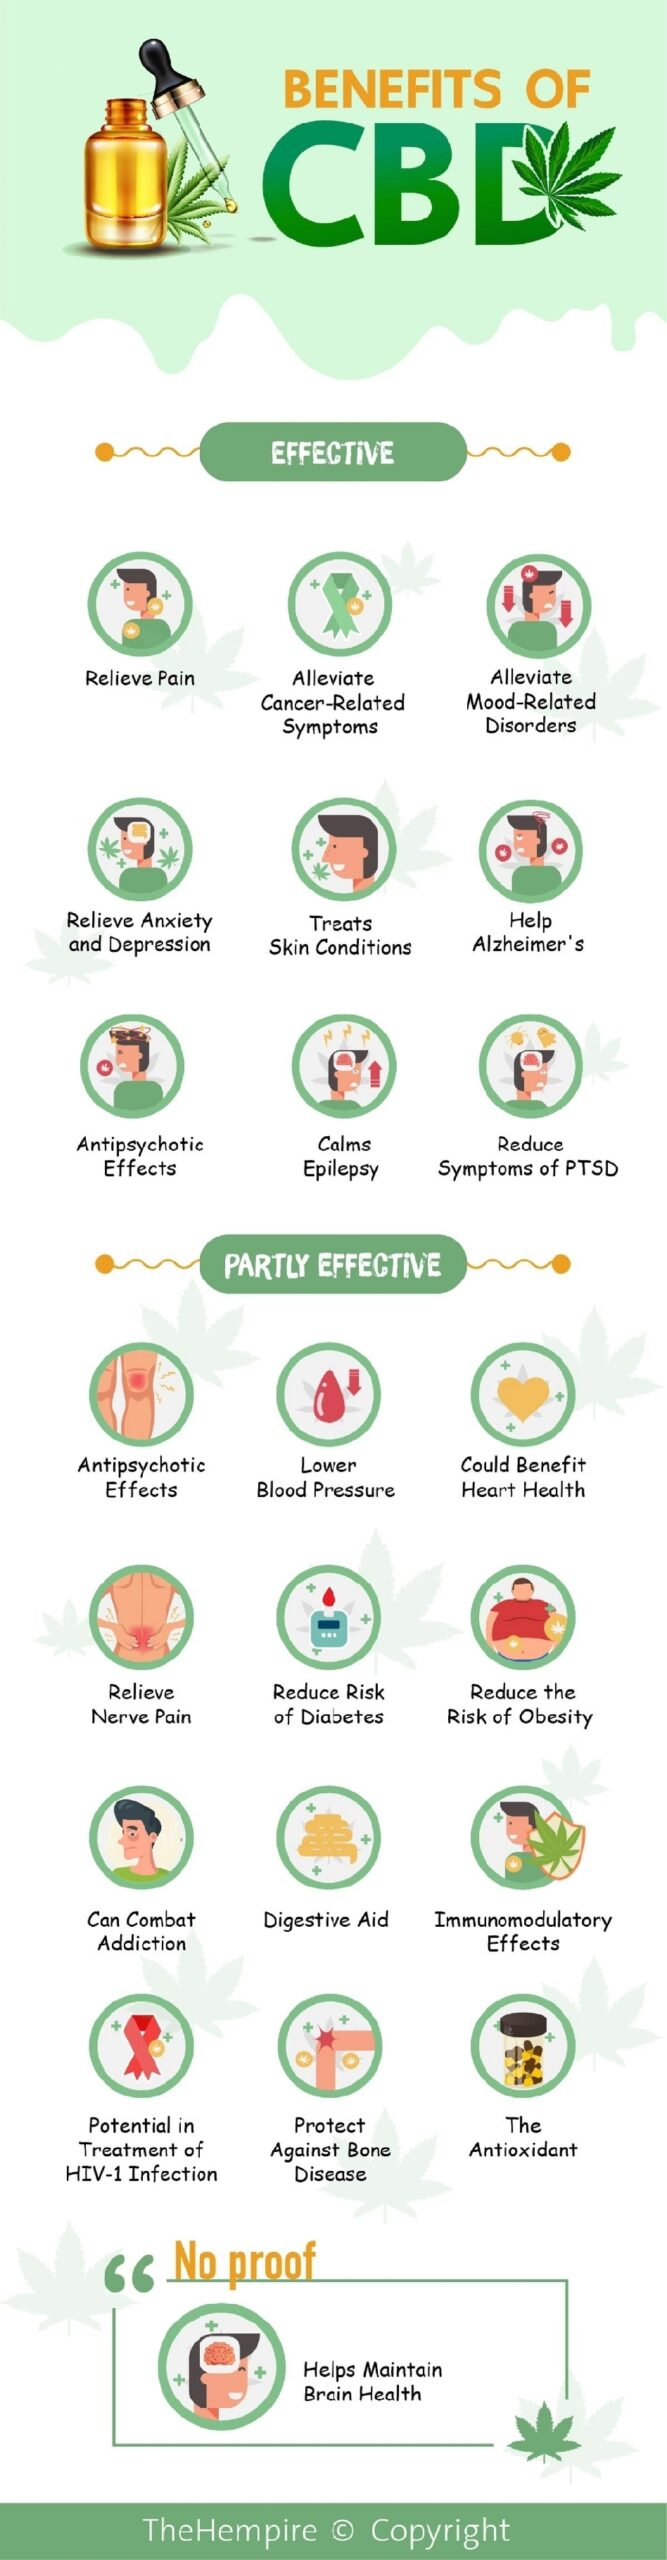 CBD Oil and it's True Effect on Mental Health during the COVID-19 Epidemic - Newslibre